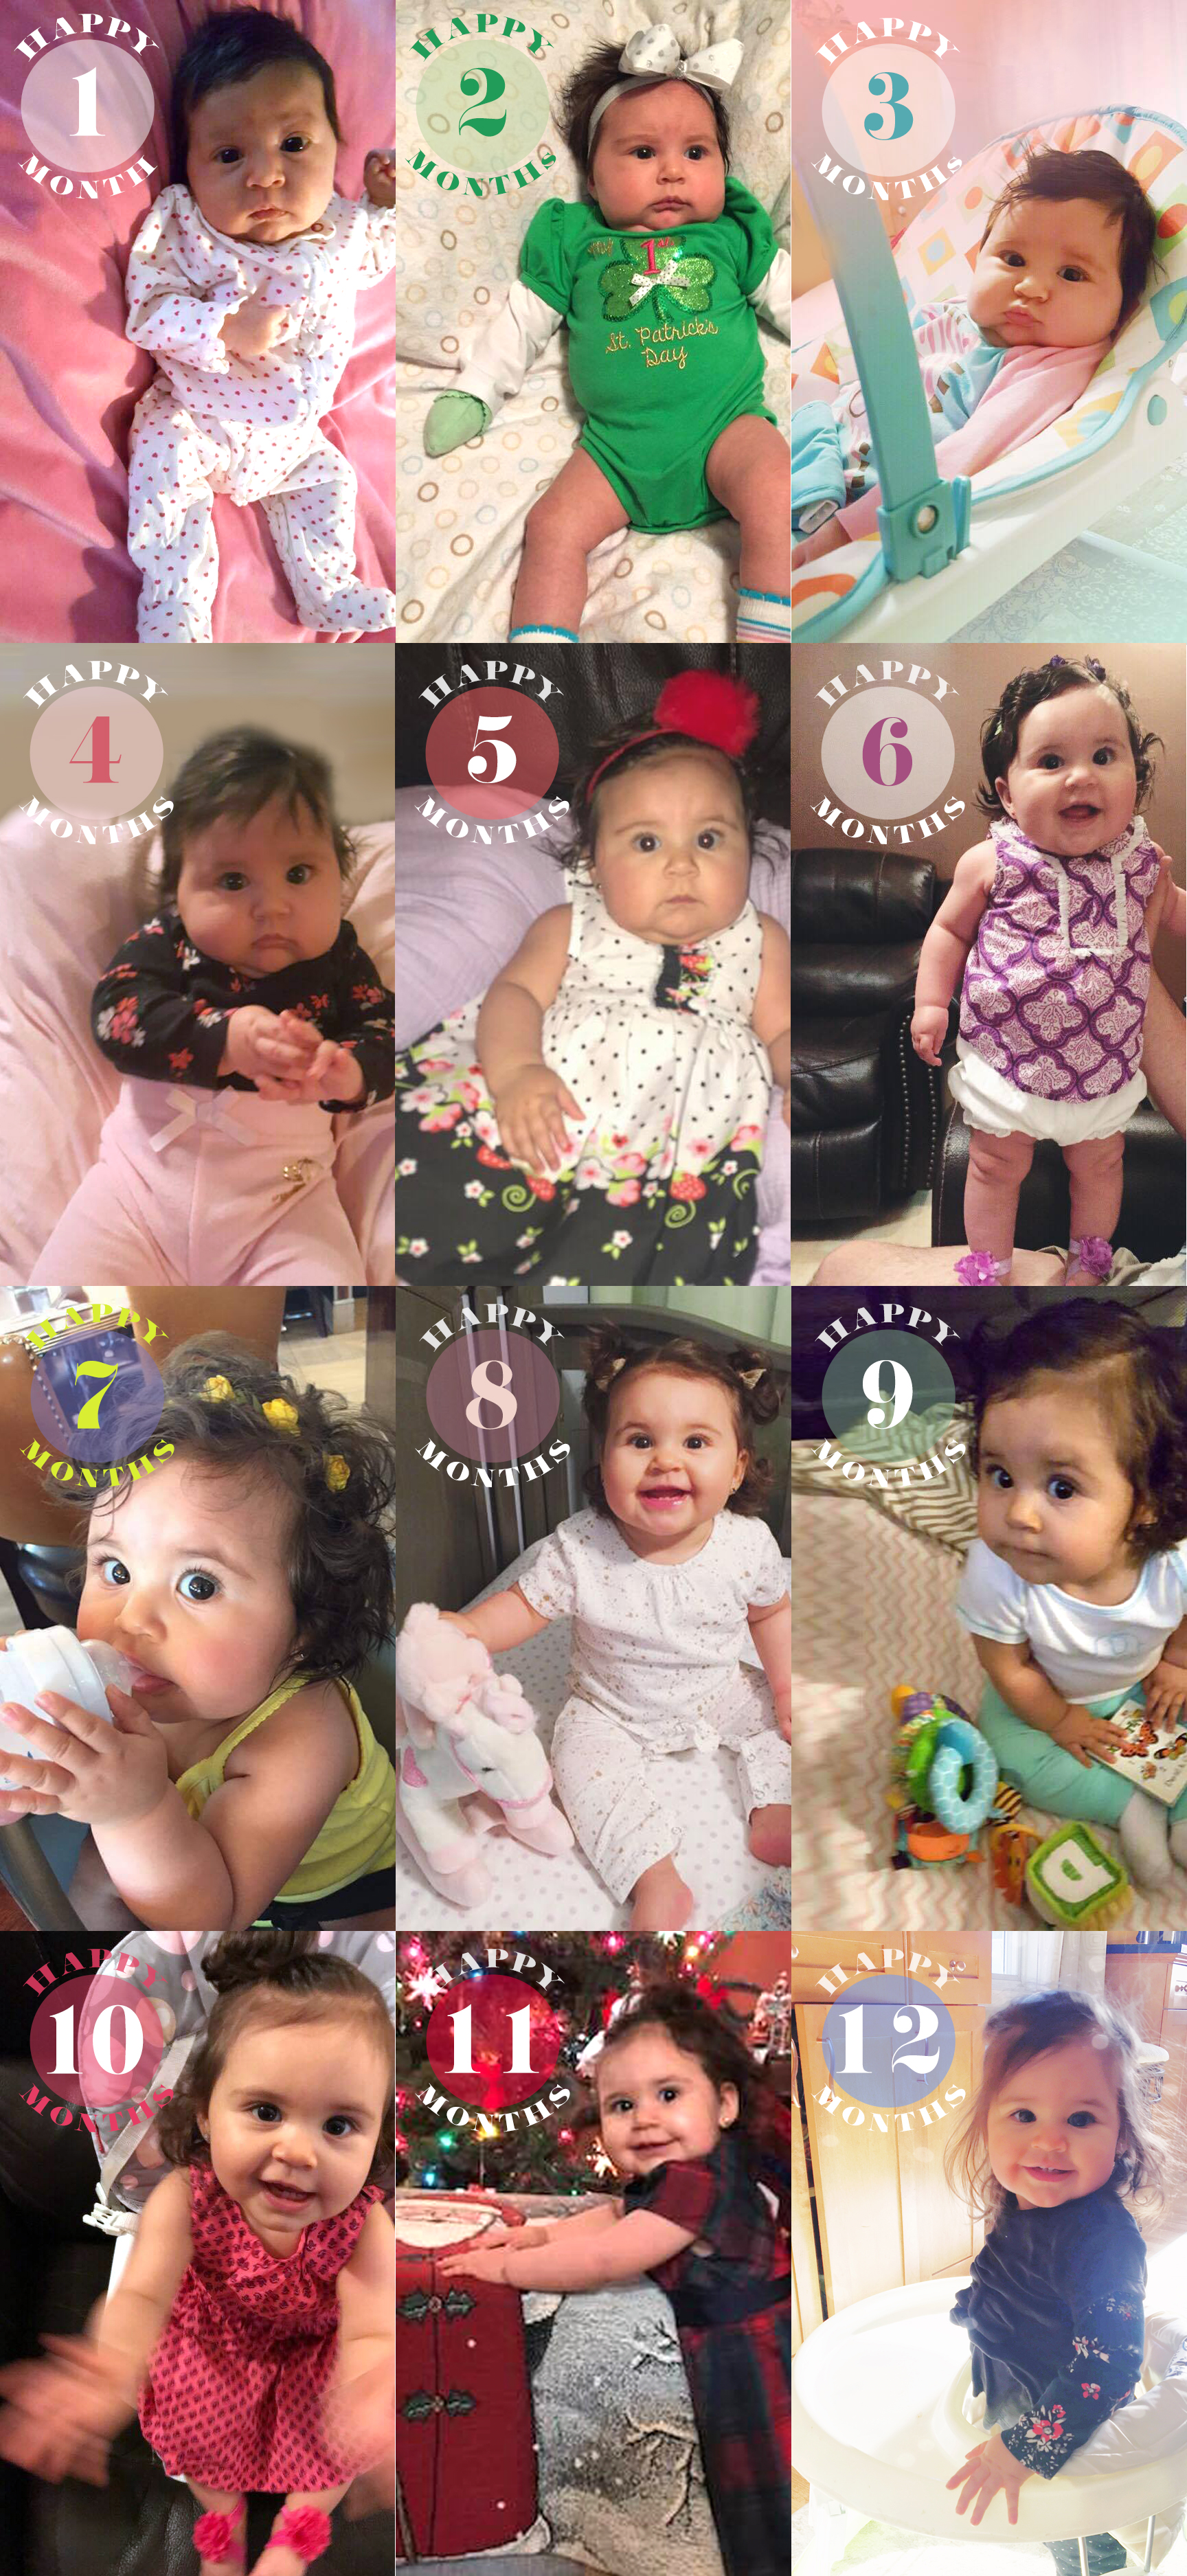 Raelyn is 1 year old | Amanda Zampelli